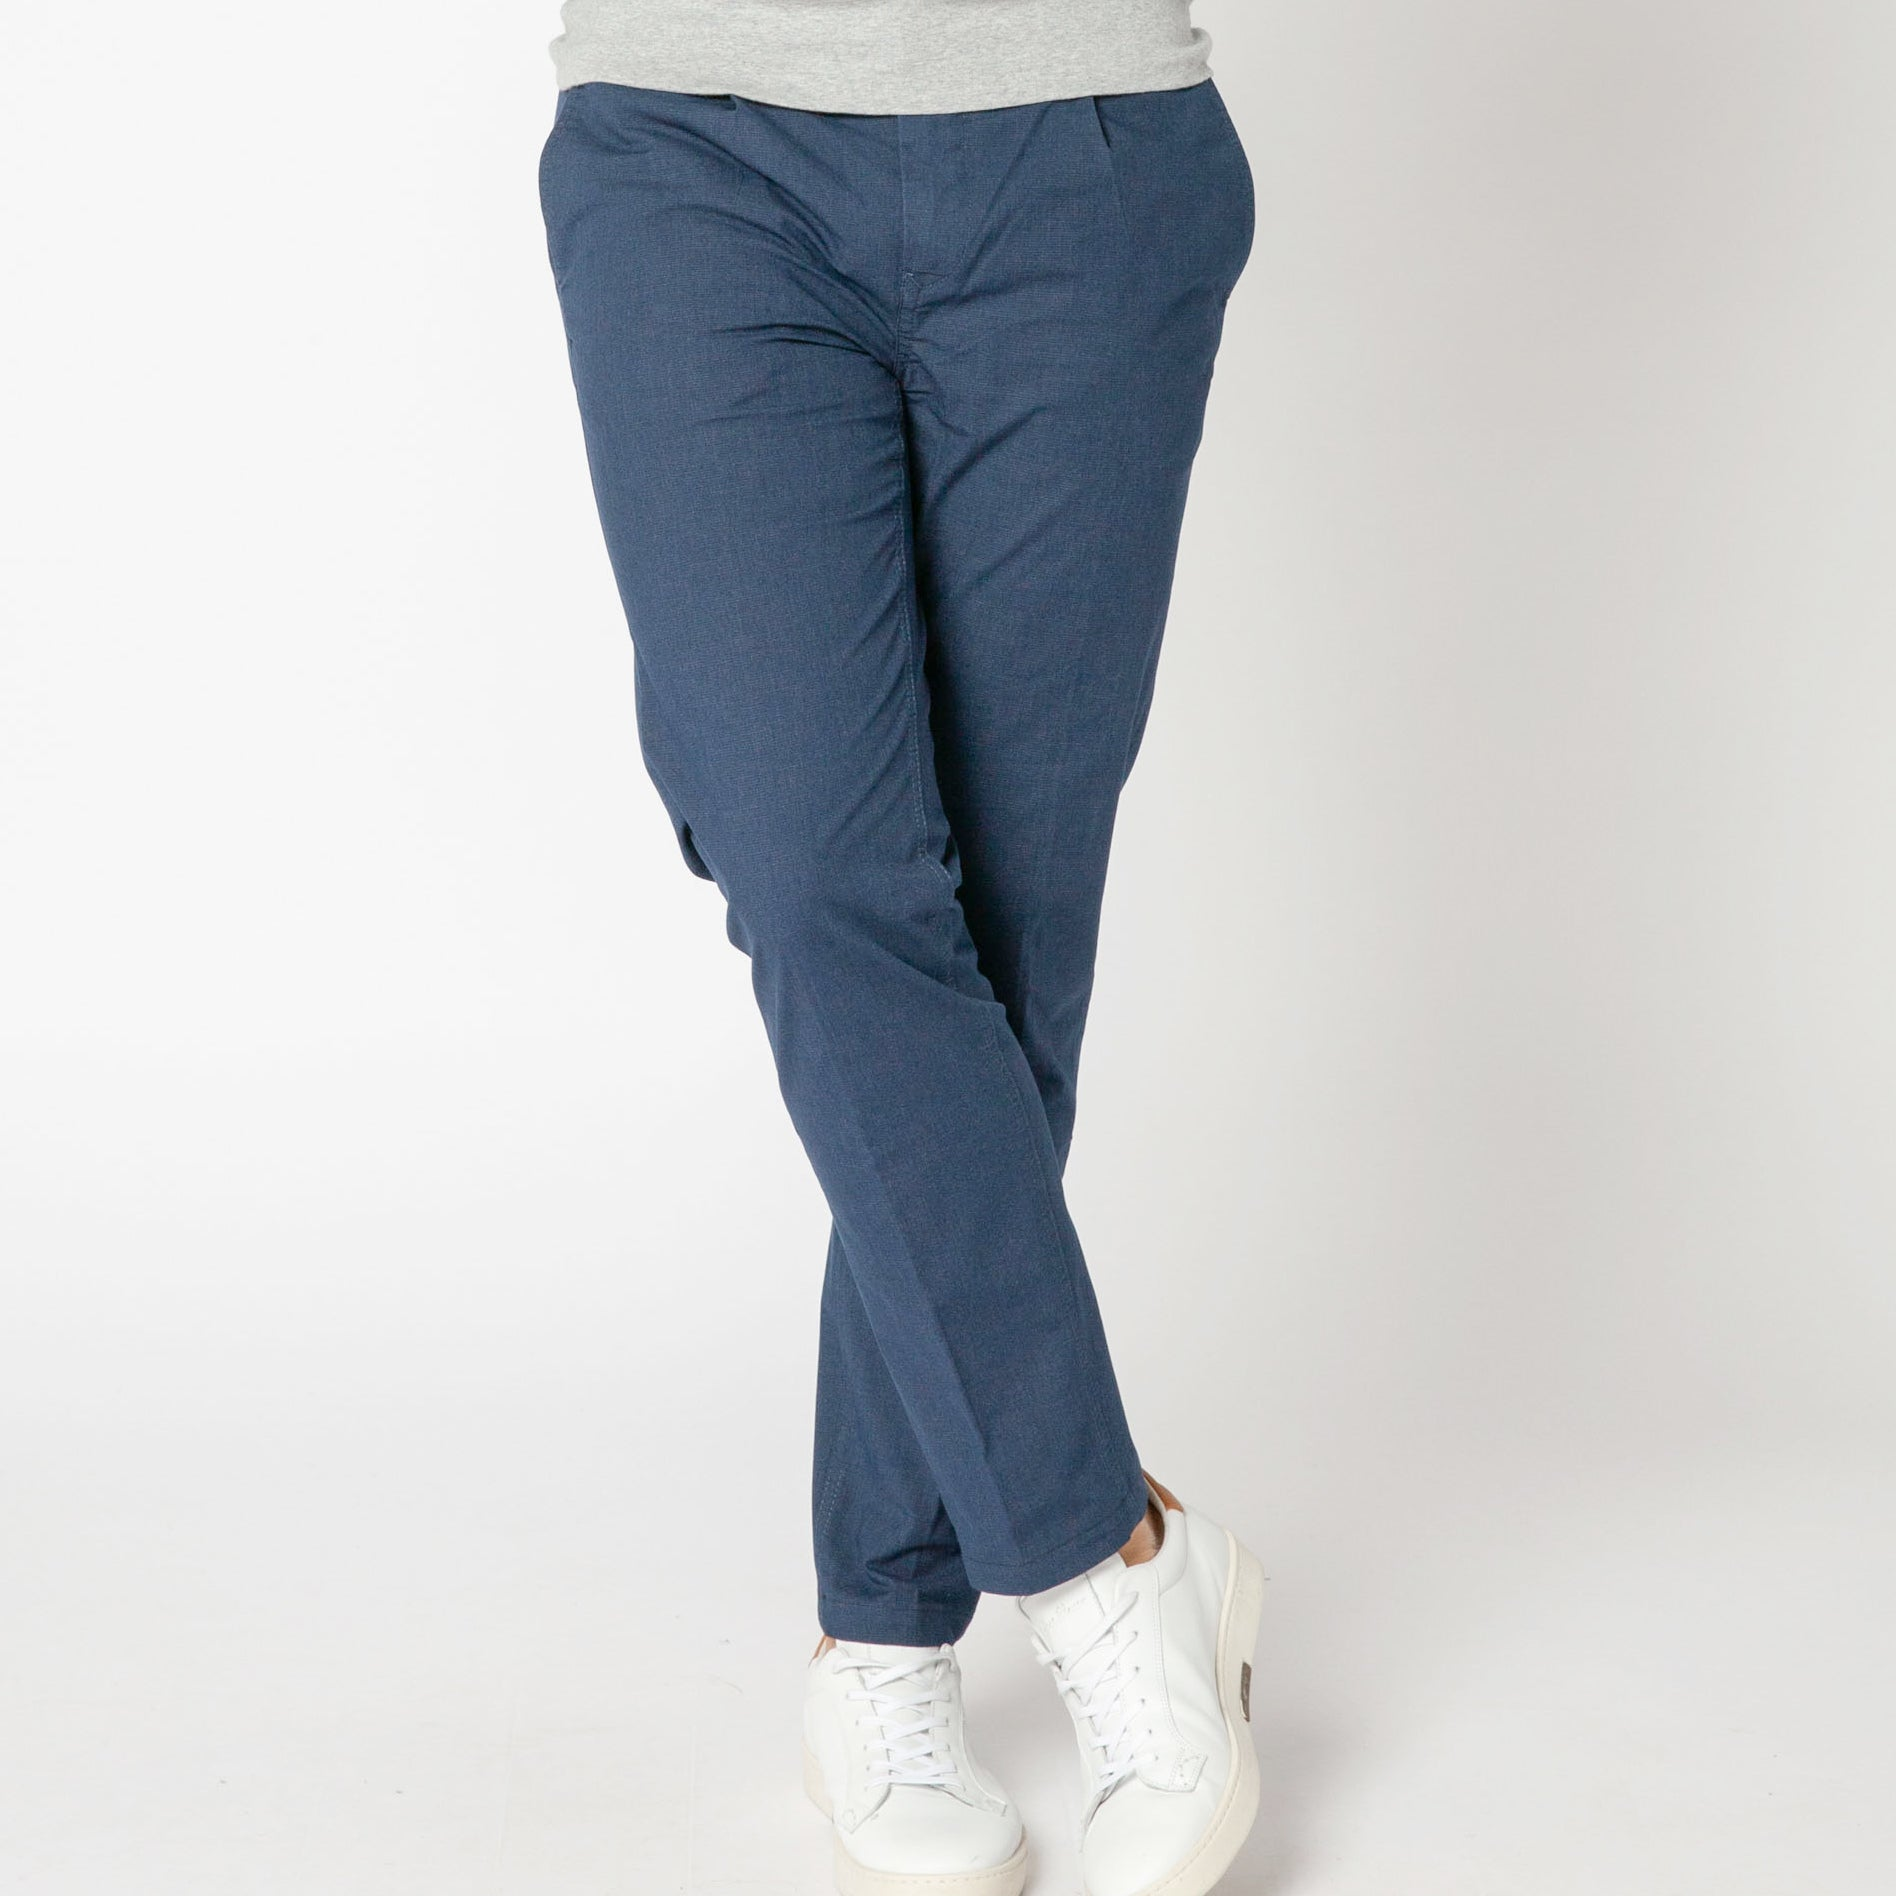 707 Cotton Chino Pant: Indigo